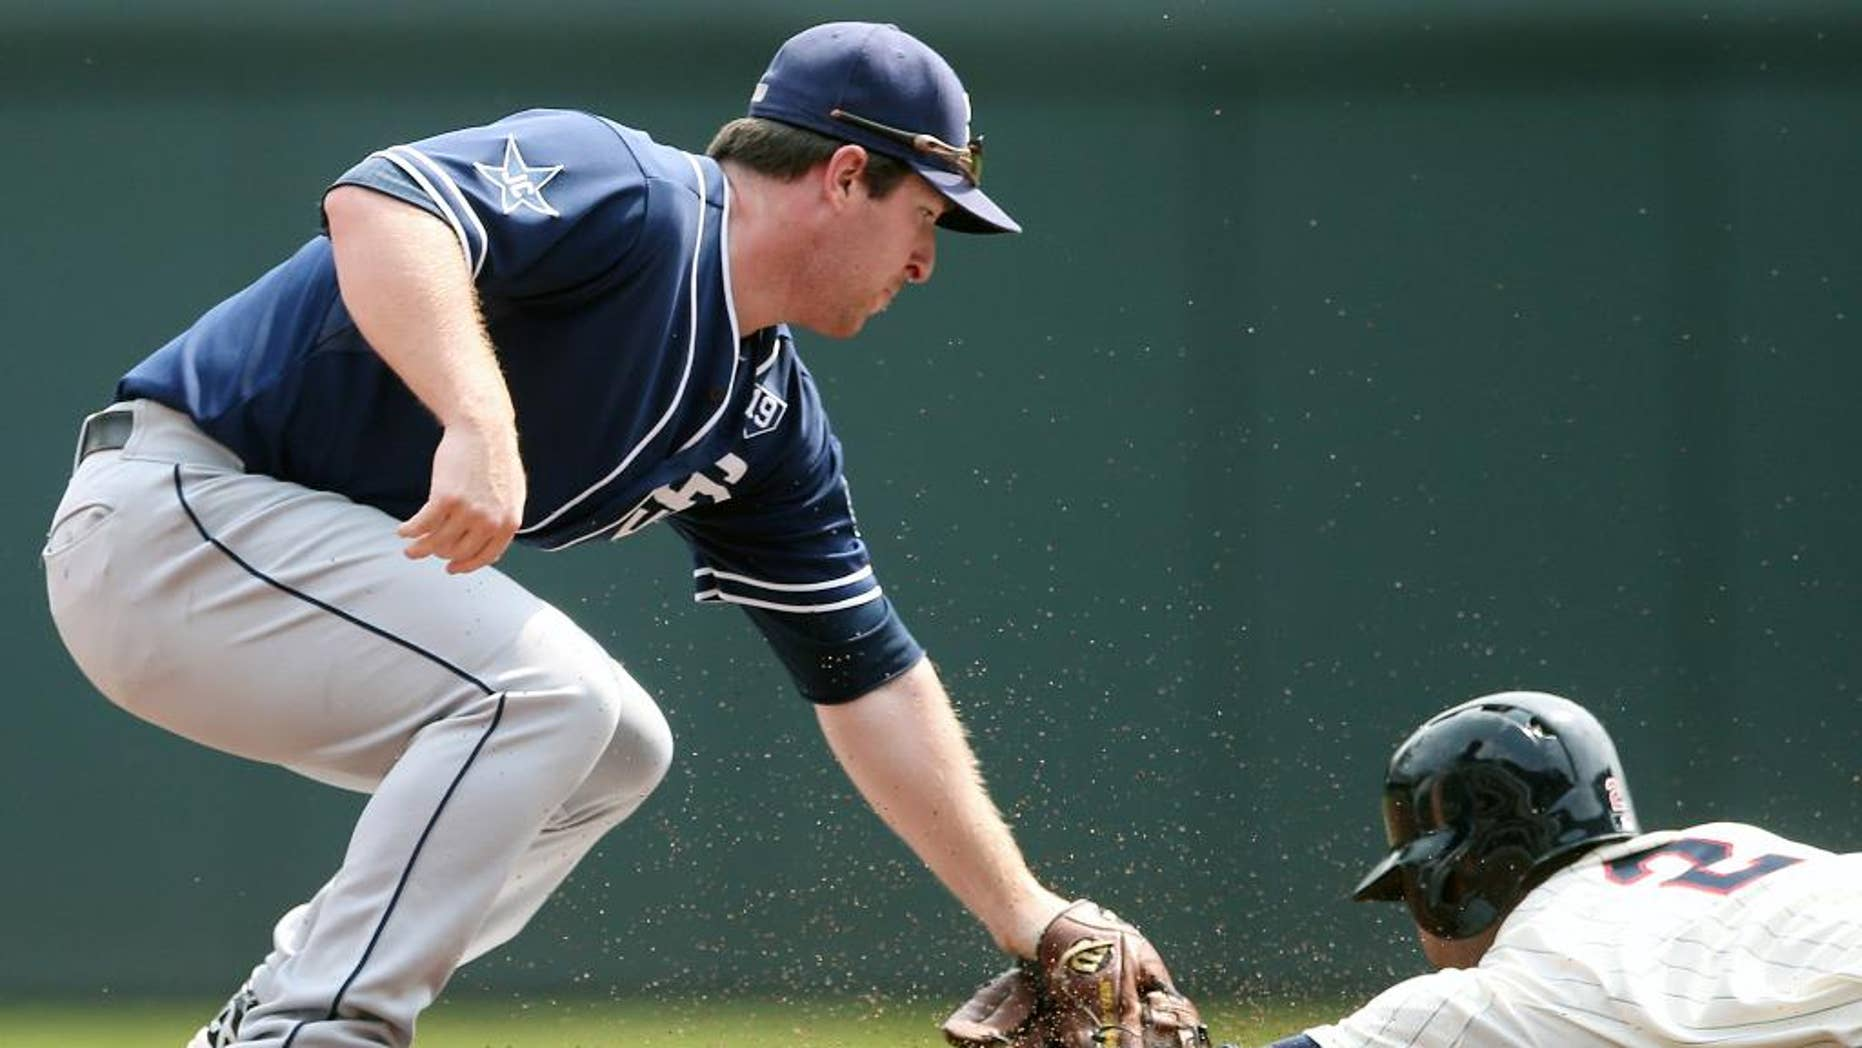 San Diego Padres second baseman Jedd Gyorko, left, reaches to tag Minnesota Twins' Brian Dozier who was called safe as he stole second base in the first inning of a baseball game, Wednesday, Aug. 6, 2014, in Minneapolis. (AP Photo/Jim Mone)